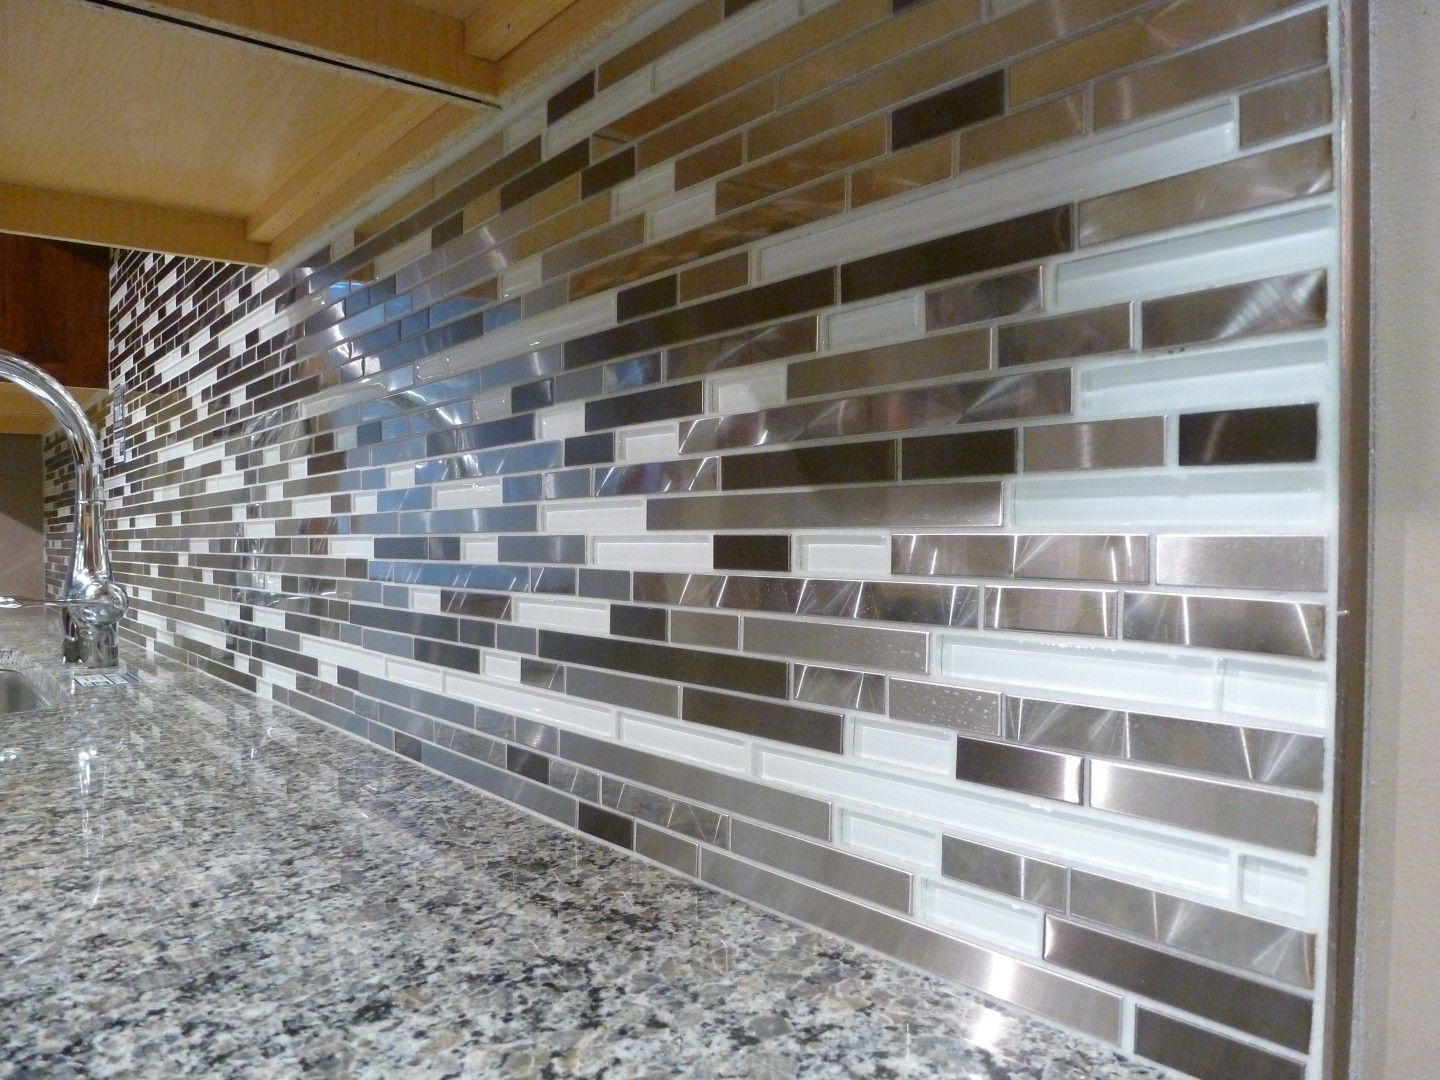 Glass Mosaic Tiles For Your Backsplash Installation Guidelines Interior Design Ideas